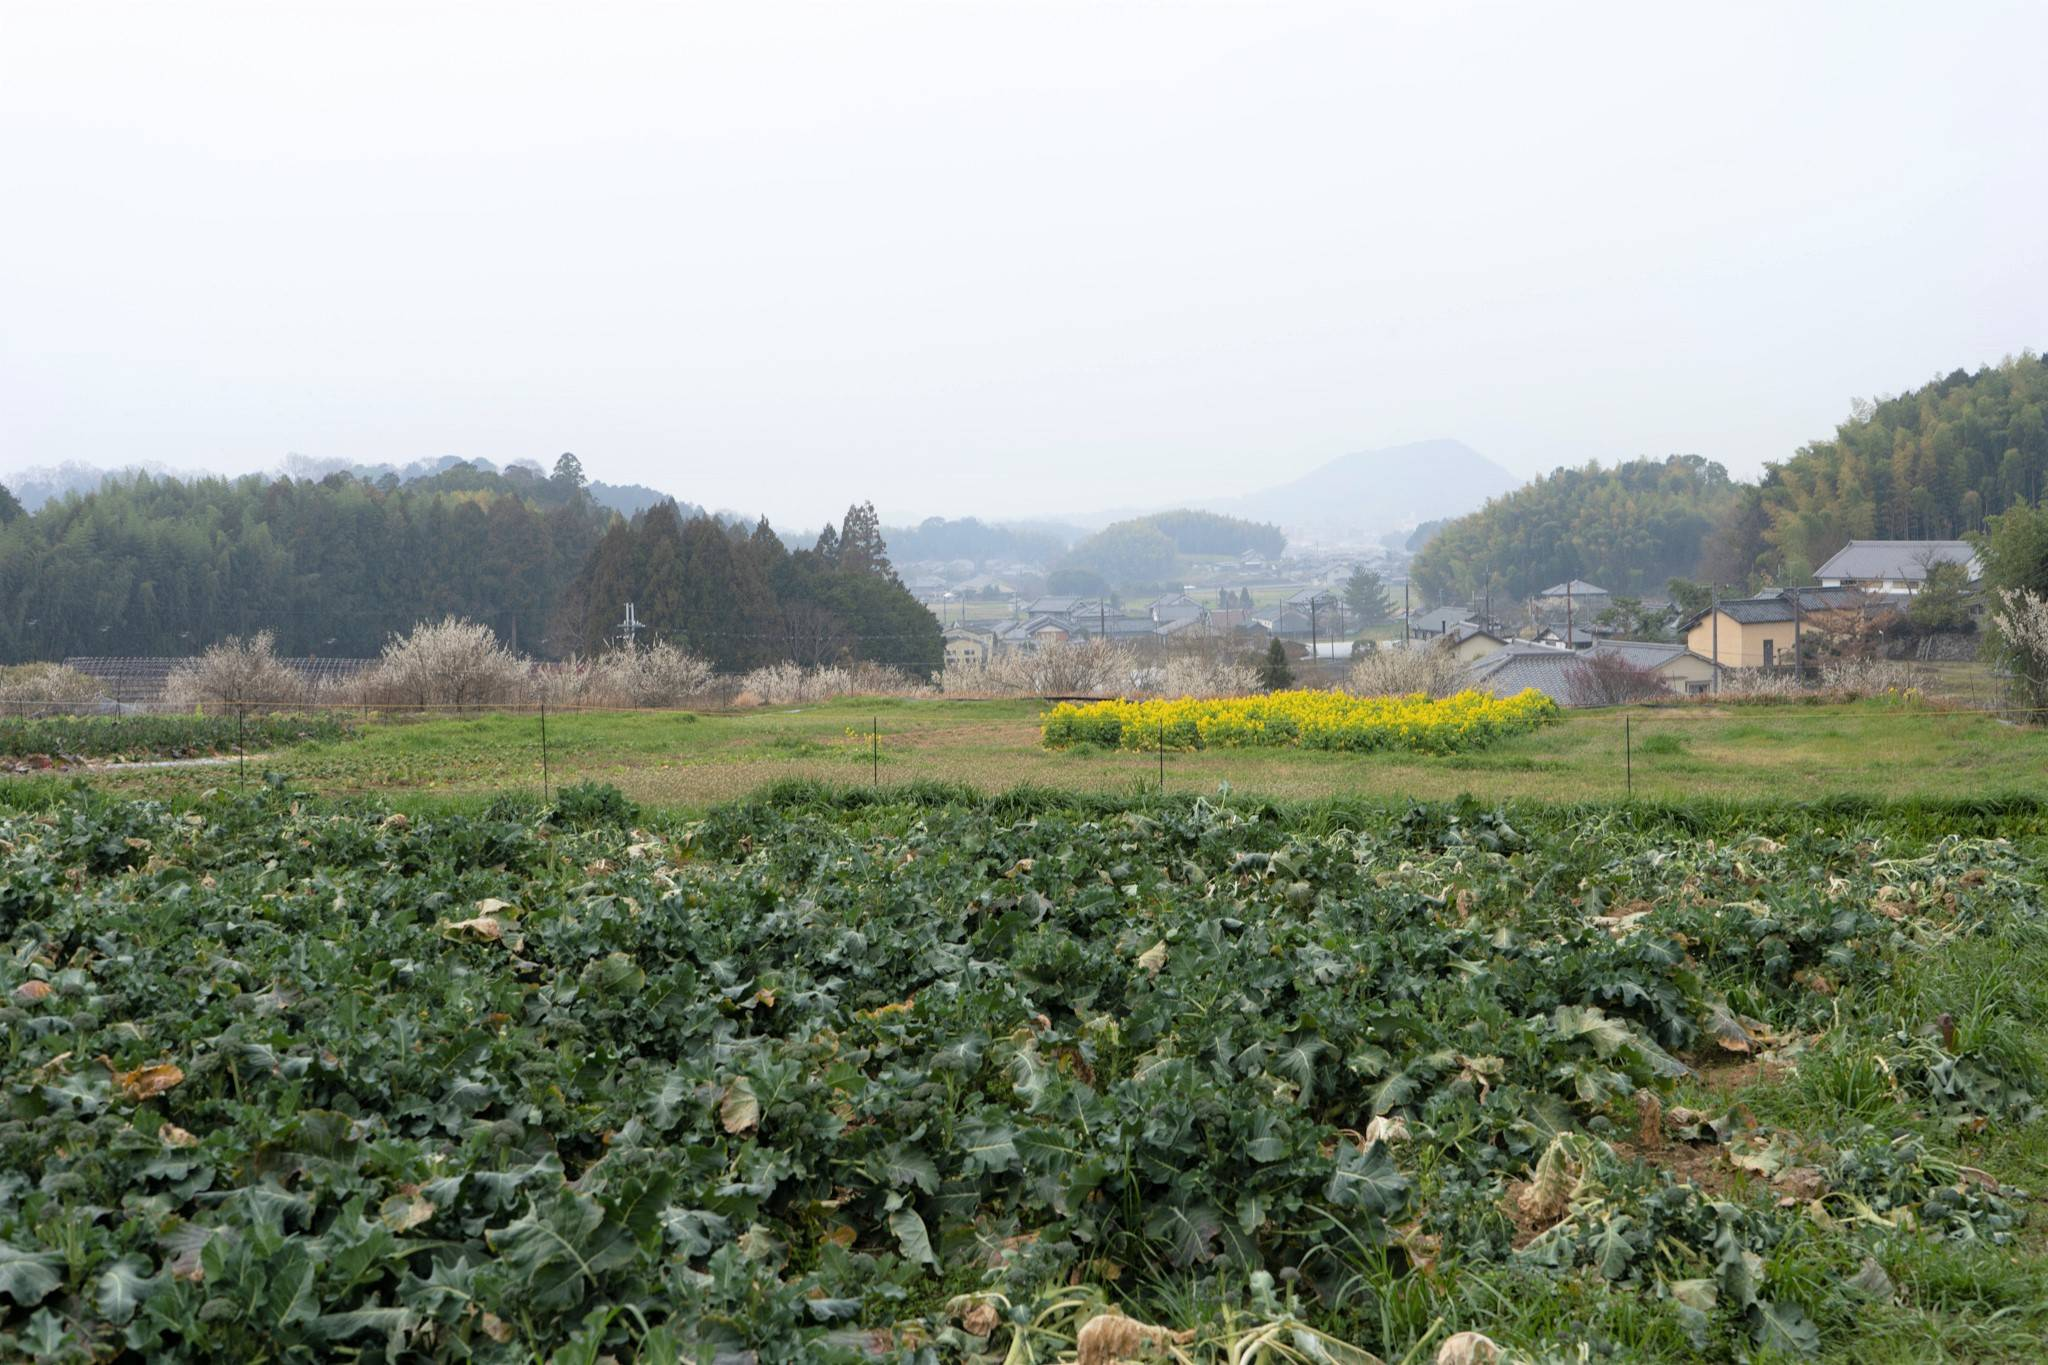 The small village of Asuka, Nara Prefecture, is known for its many ancient mounded tombs. | KYODO